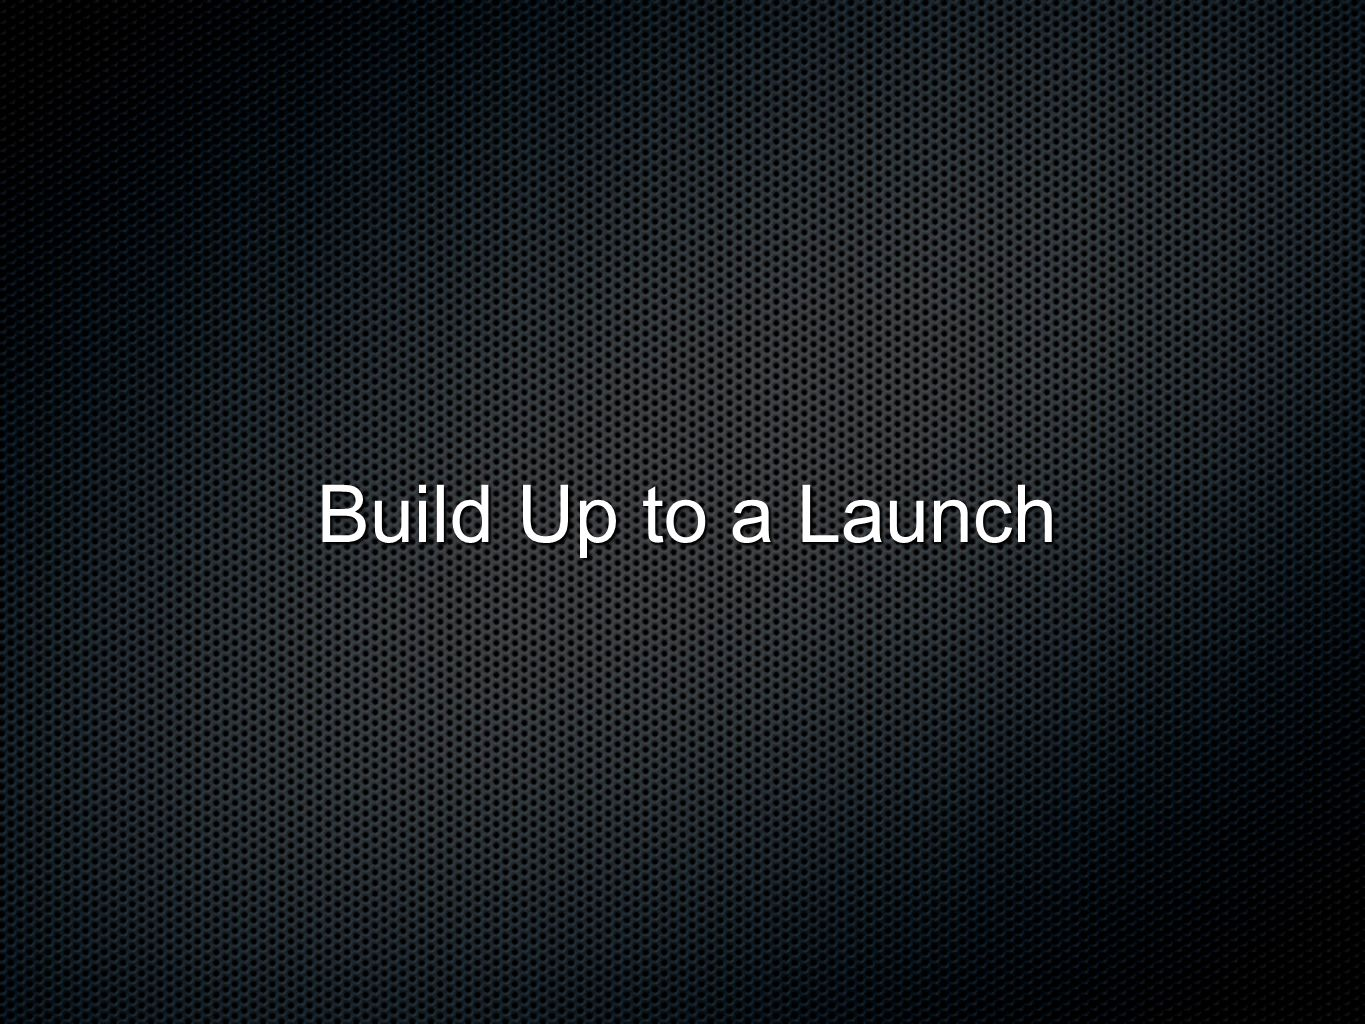 Build Up to a Launch